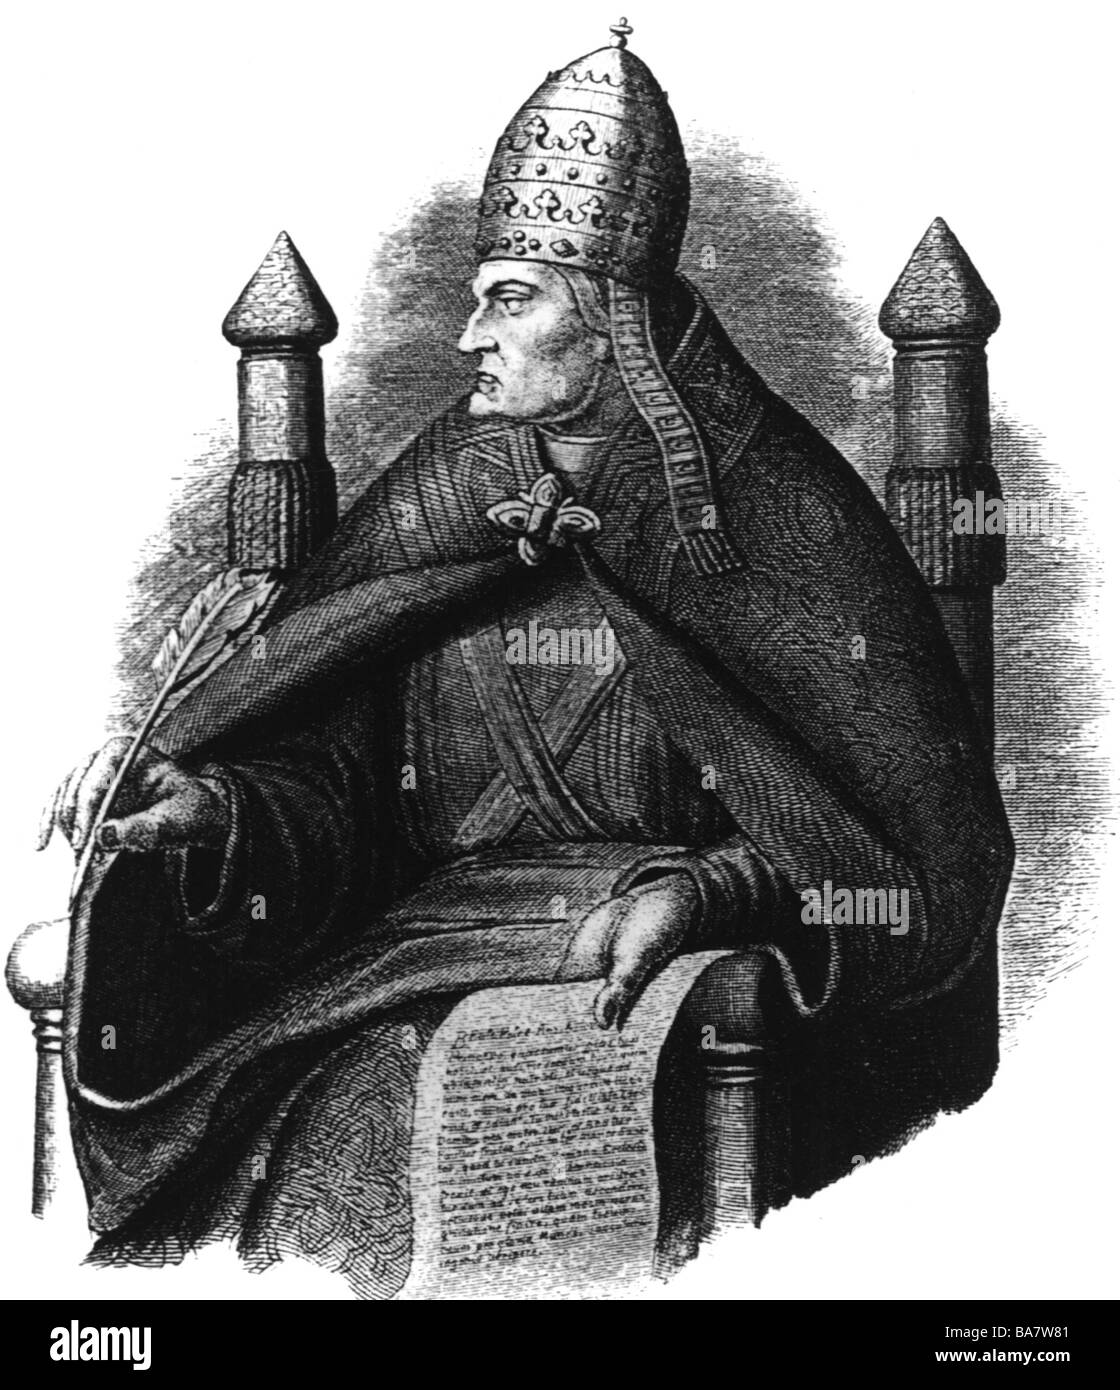 Gregory VII (Hildebrand of Soana), circa 1020/1025 - 25.5.1085, Pope 21.4.1073 - 25.5.1085, half length, wood engraving - Stock Image